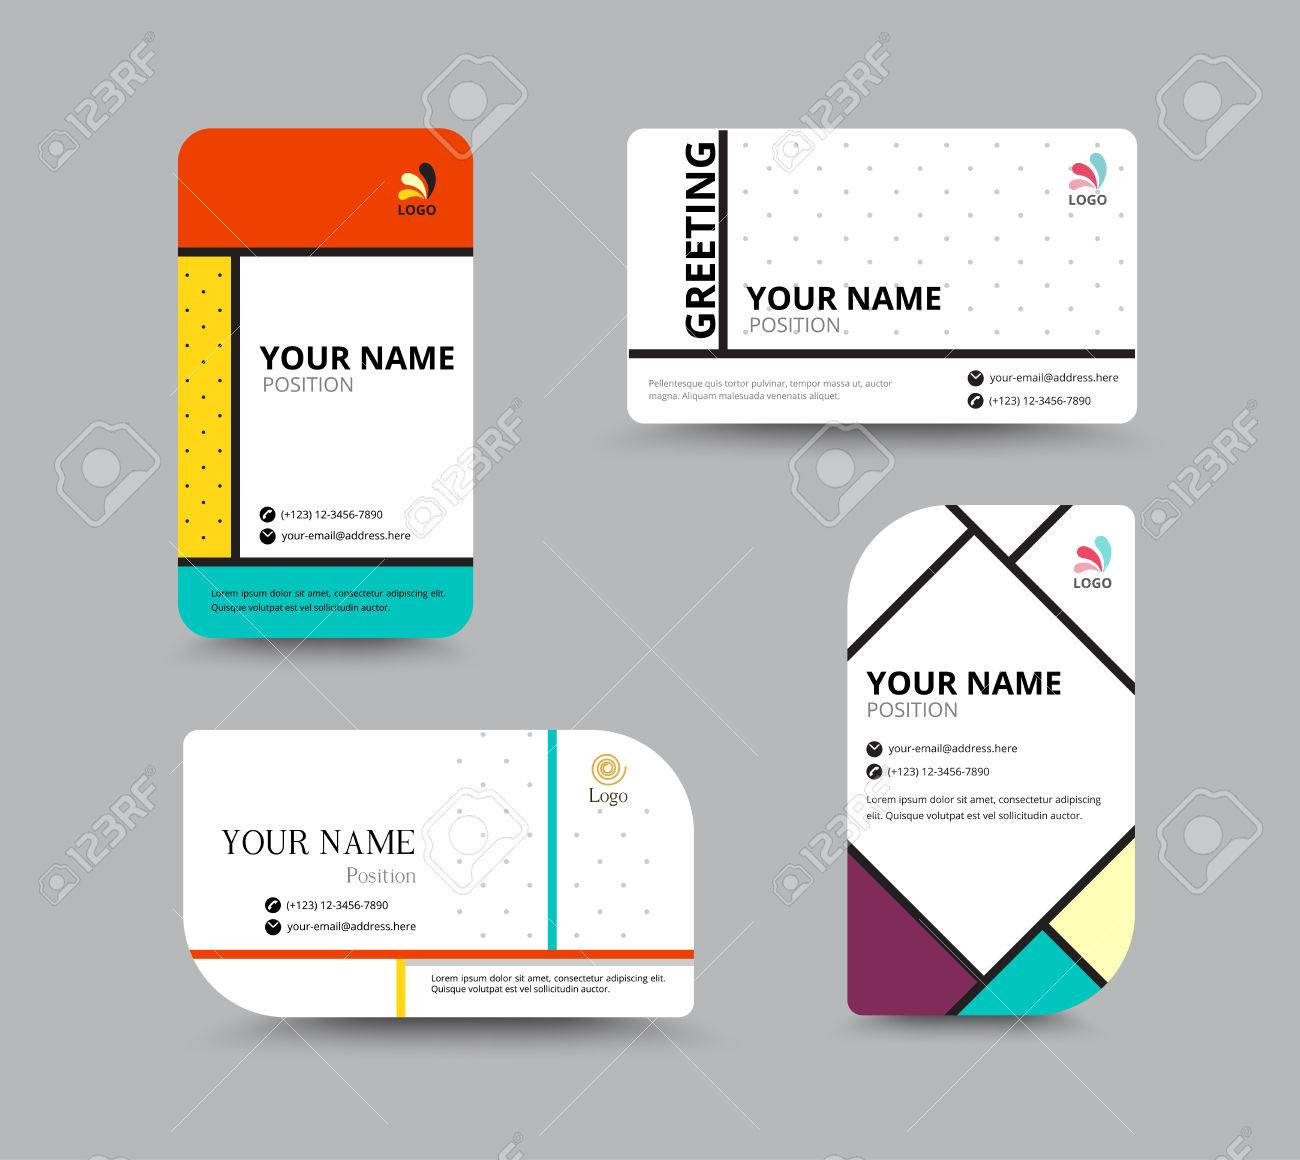 Best font for business card images free business cards font for business card images free business cards business card template name card design for business magicingreecefo Image collections